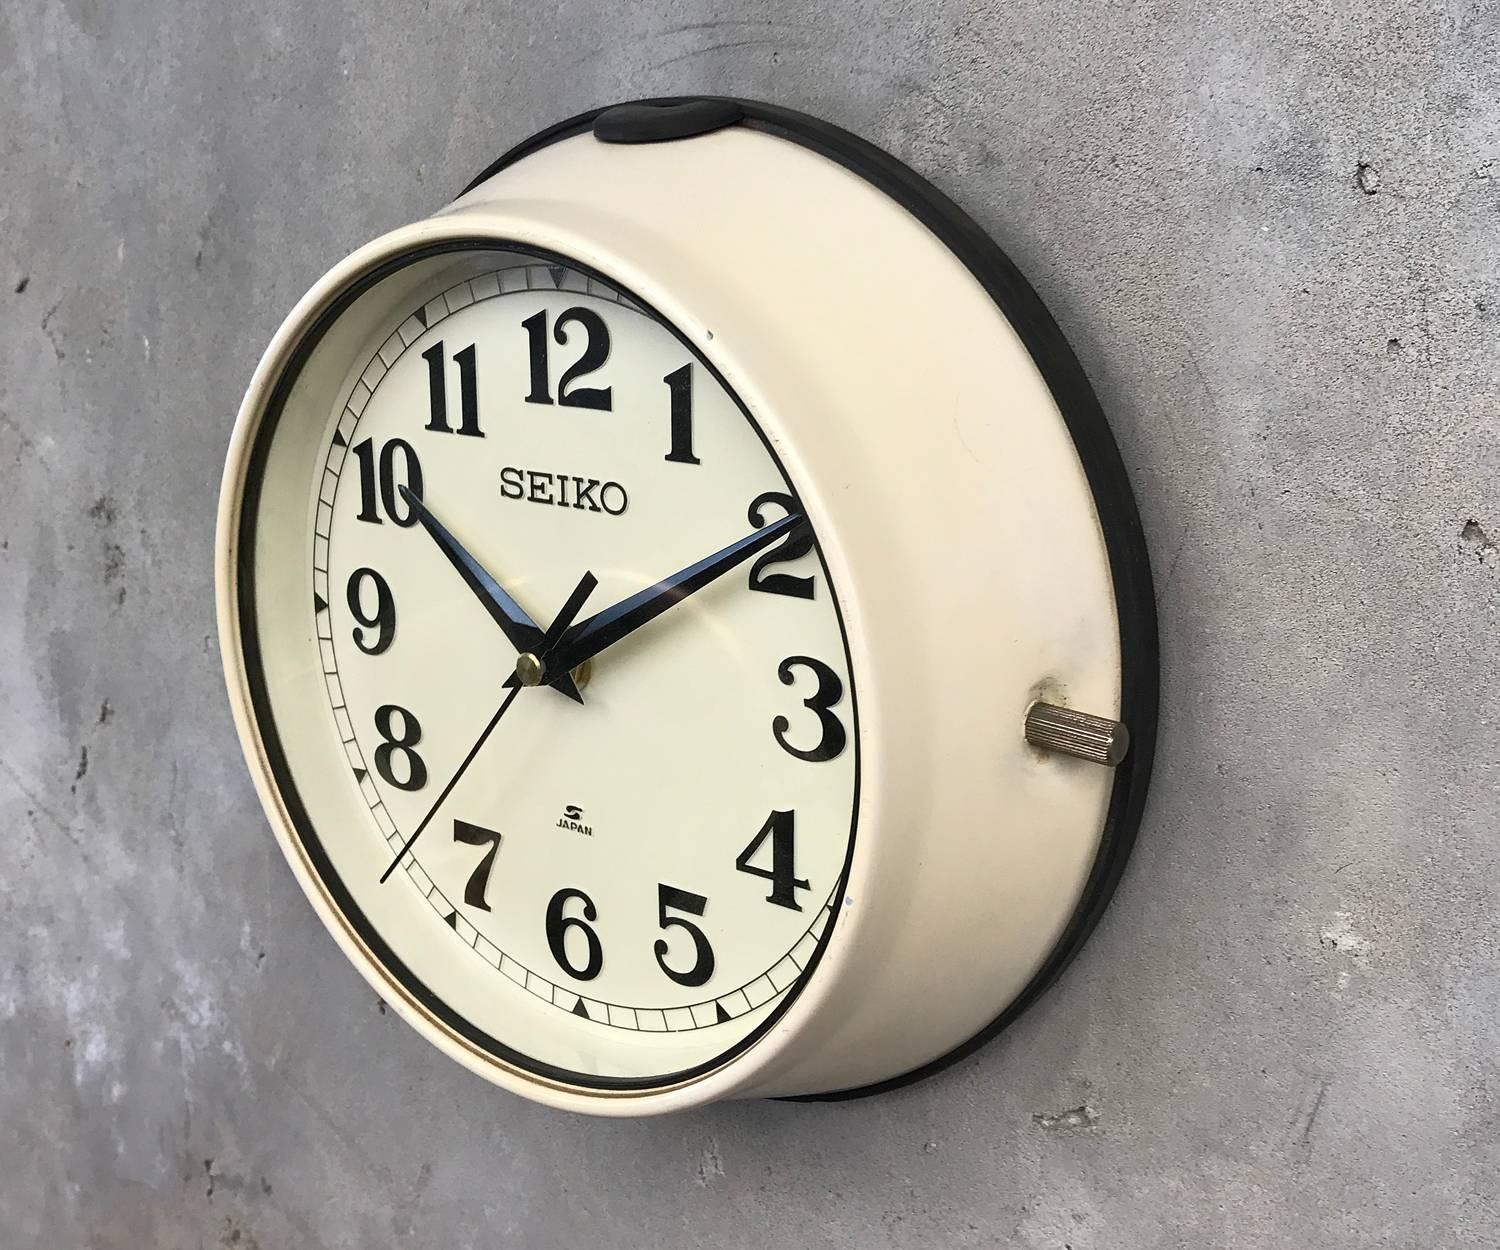 Vintage seiko wall clock images home wall decoration ideas seiko wall clock medium image for seiko india wall clocks clock 1970s green seiko retro vintage amipublicfo Image collections